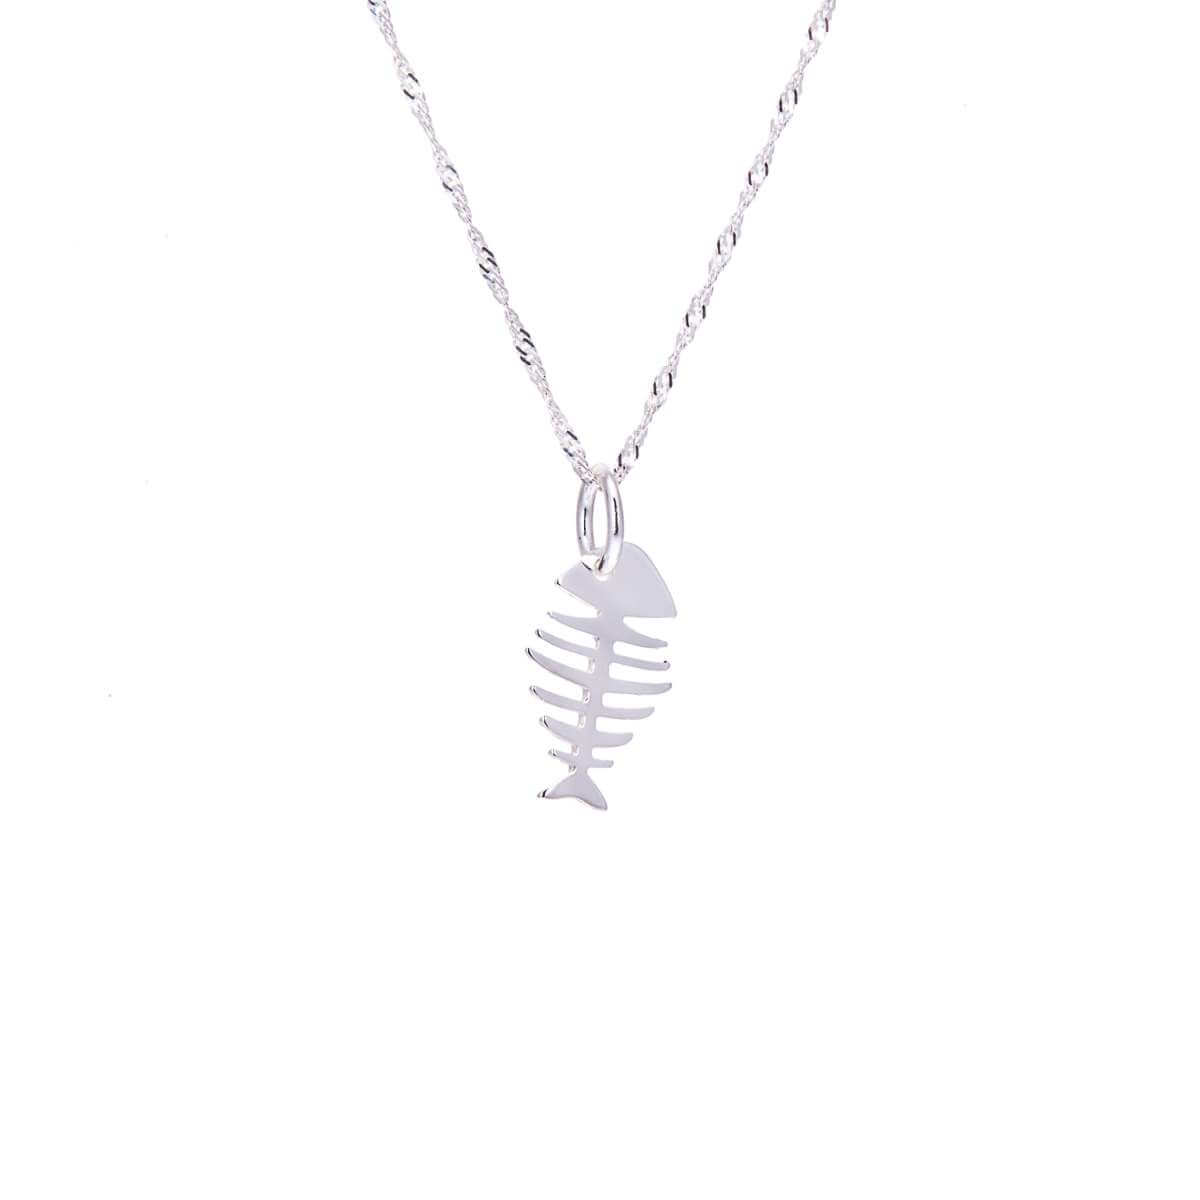 Sterling Silver Fish Bones Necklace 16 - 24 Inches